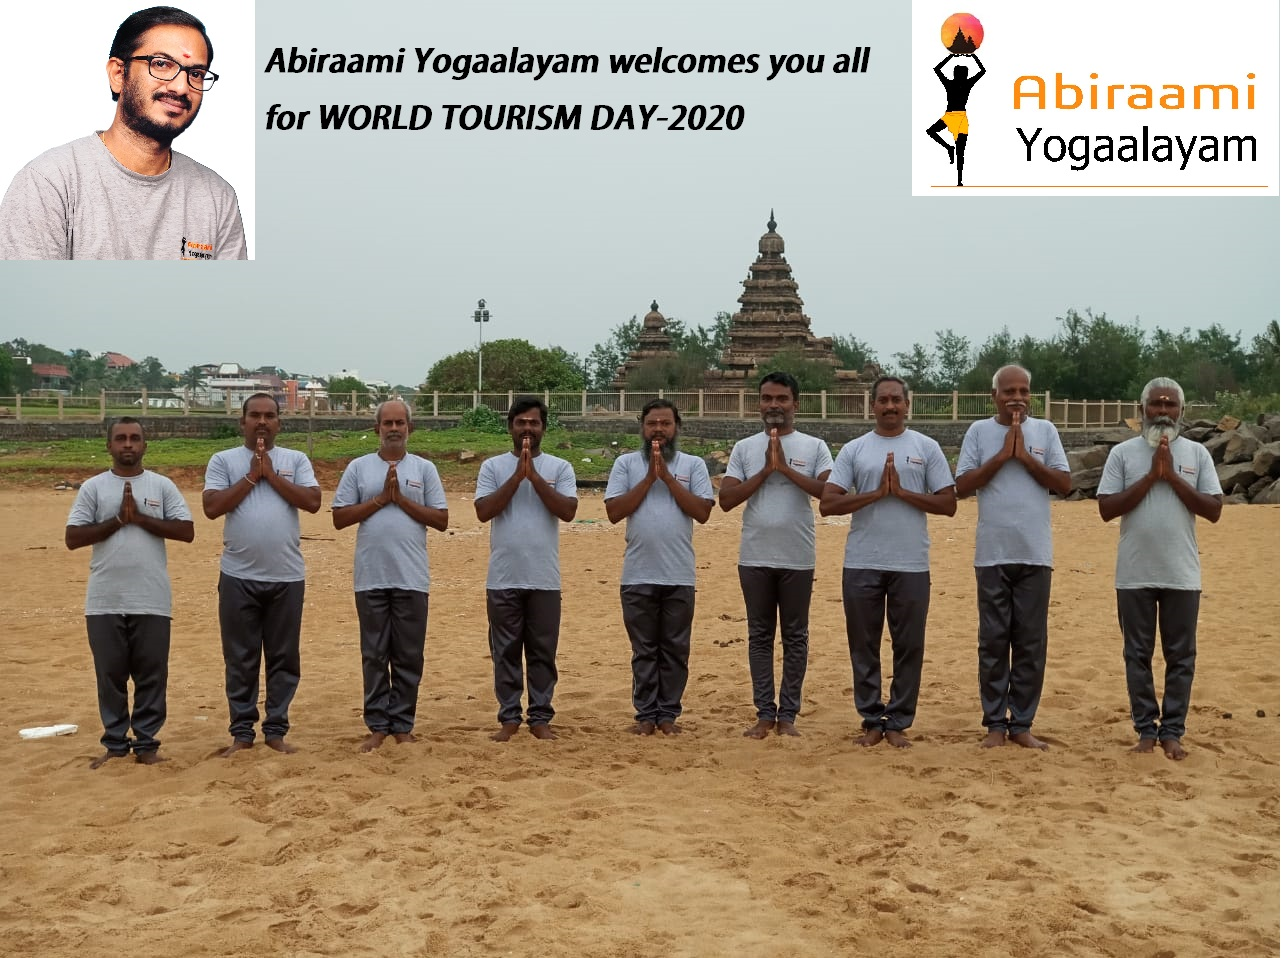 World Tourism Day 2020-Abiraami Yogaalayam celebrates sand sculpting event in Mamallapuram,India